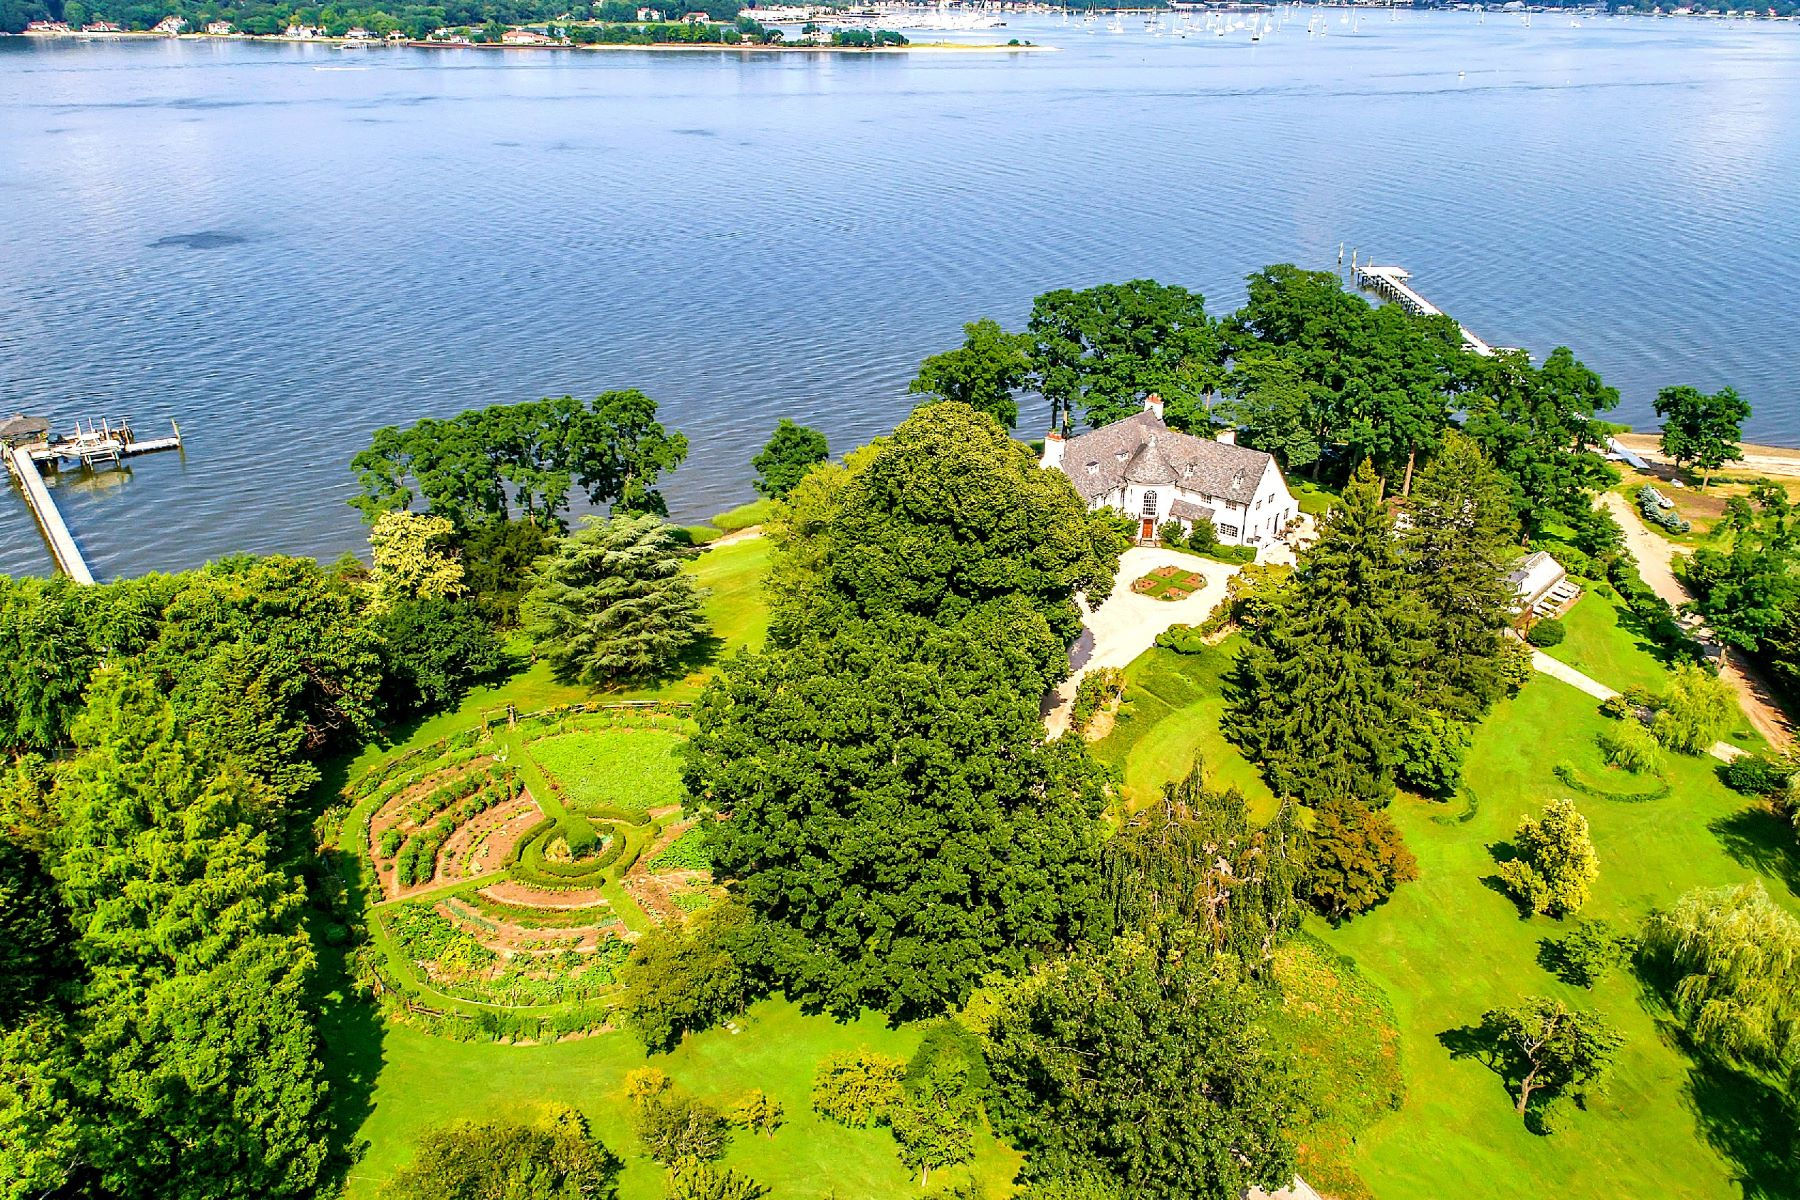 Single Family Homes for Active at Great Neck 229 Dock Ln Great Neck, New York 11024 United States